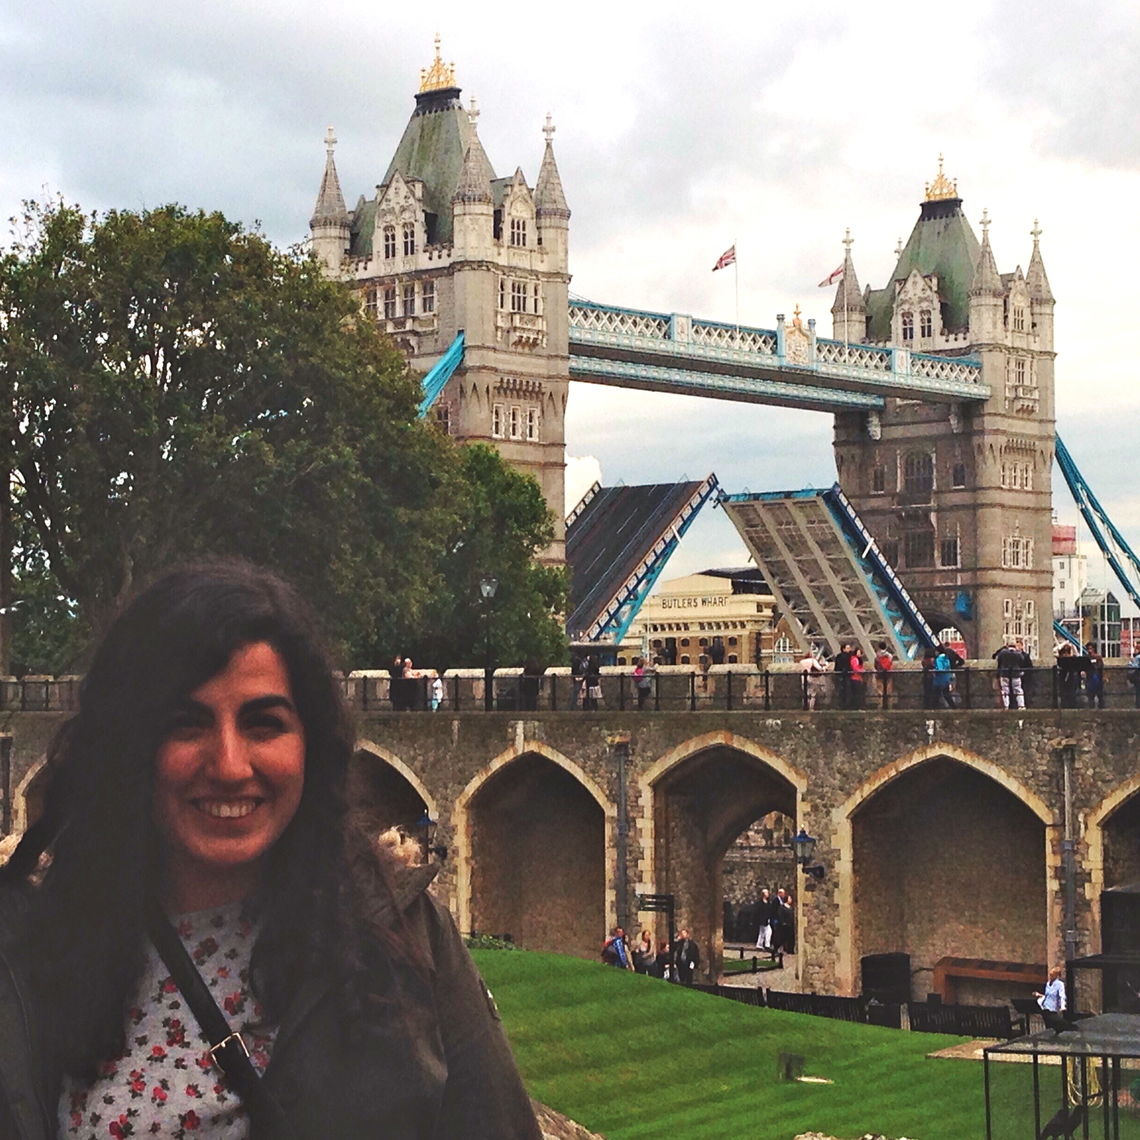 The Tower of London and its drawbridge were one of the many sites Gülce visited during her year-long off-campus study in England.